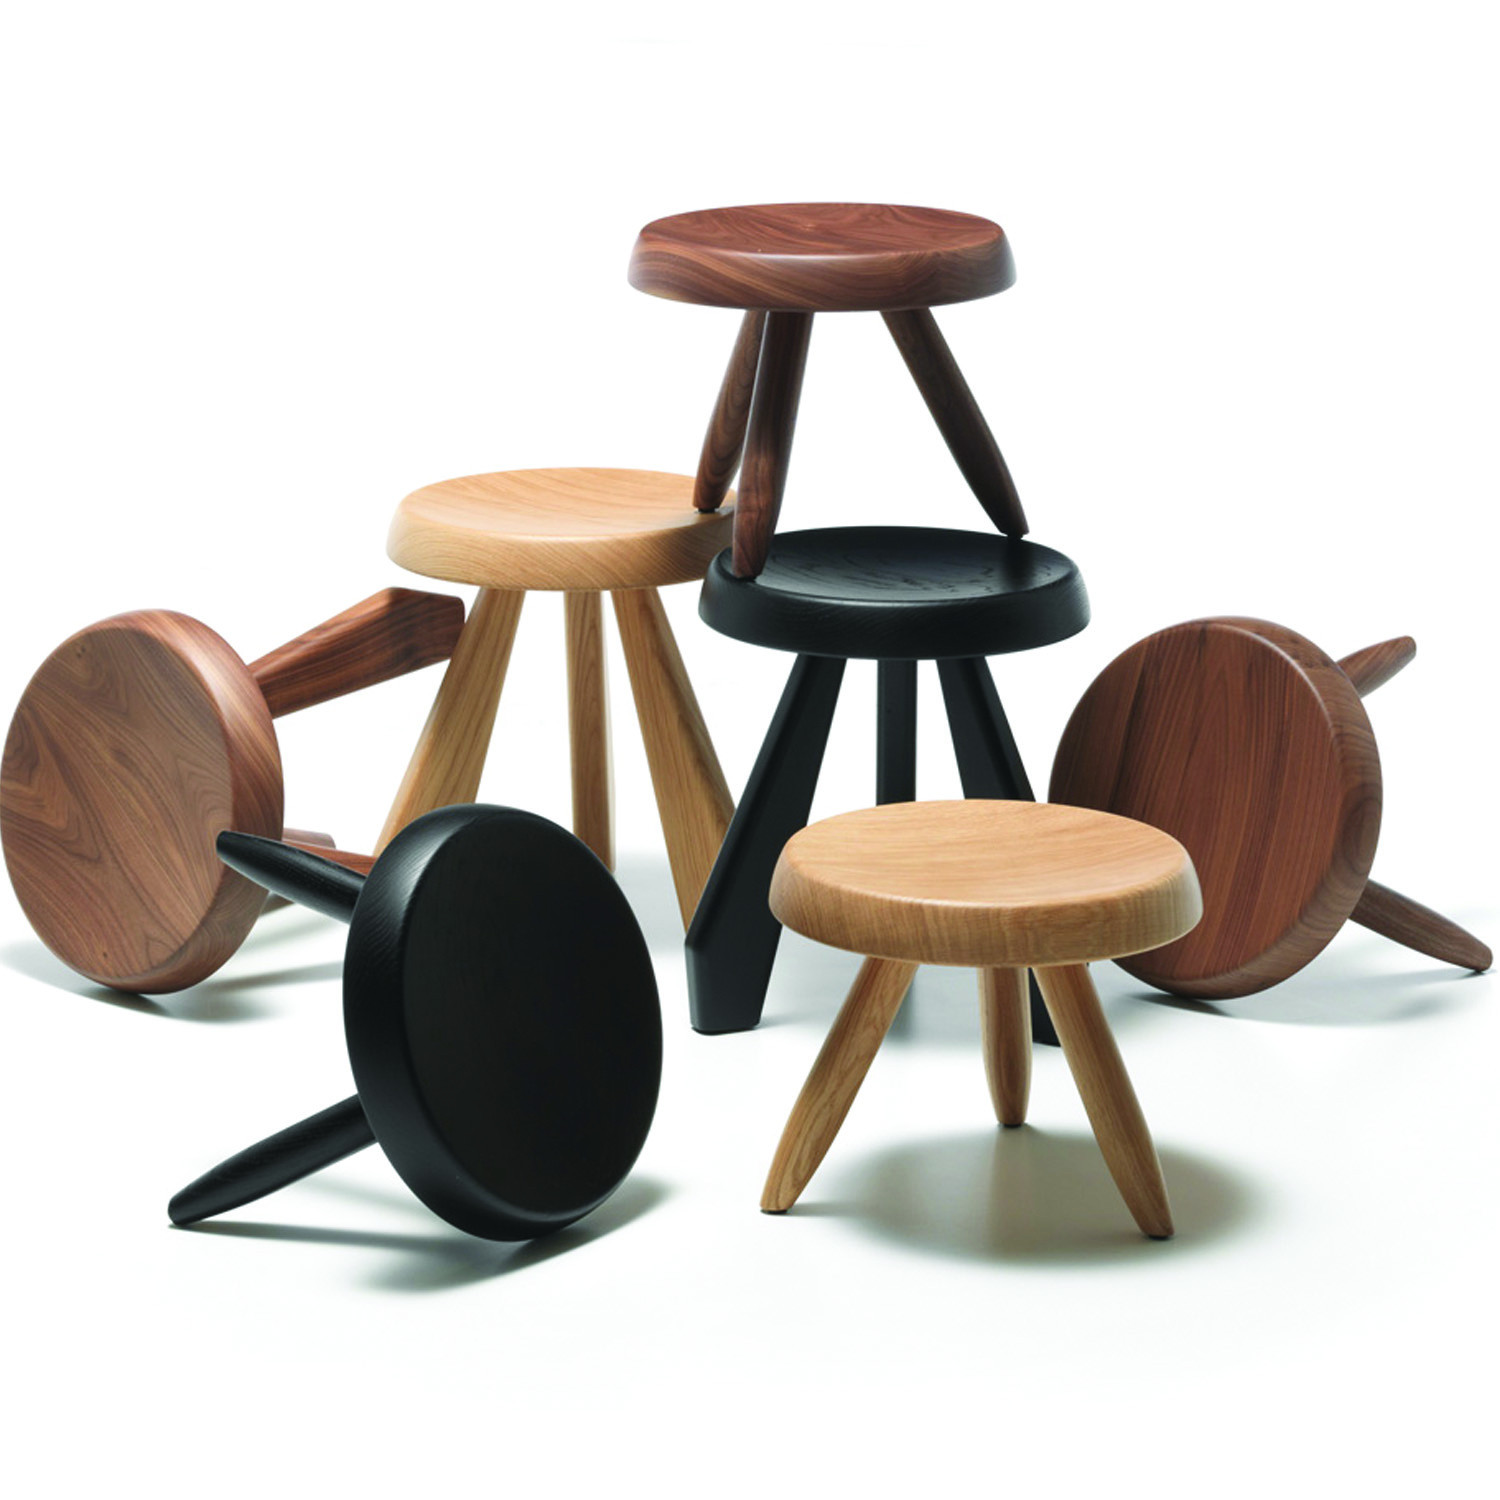 524 Tabouret Berger Stools by Cassina